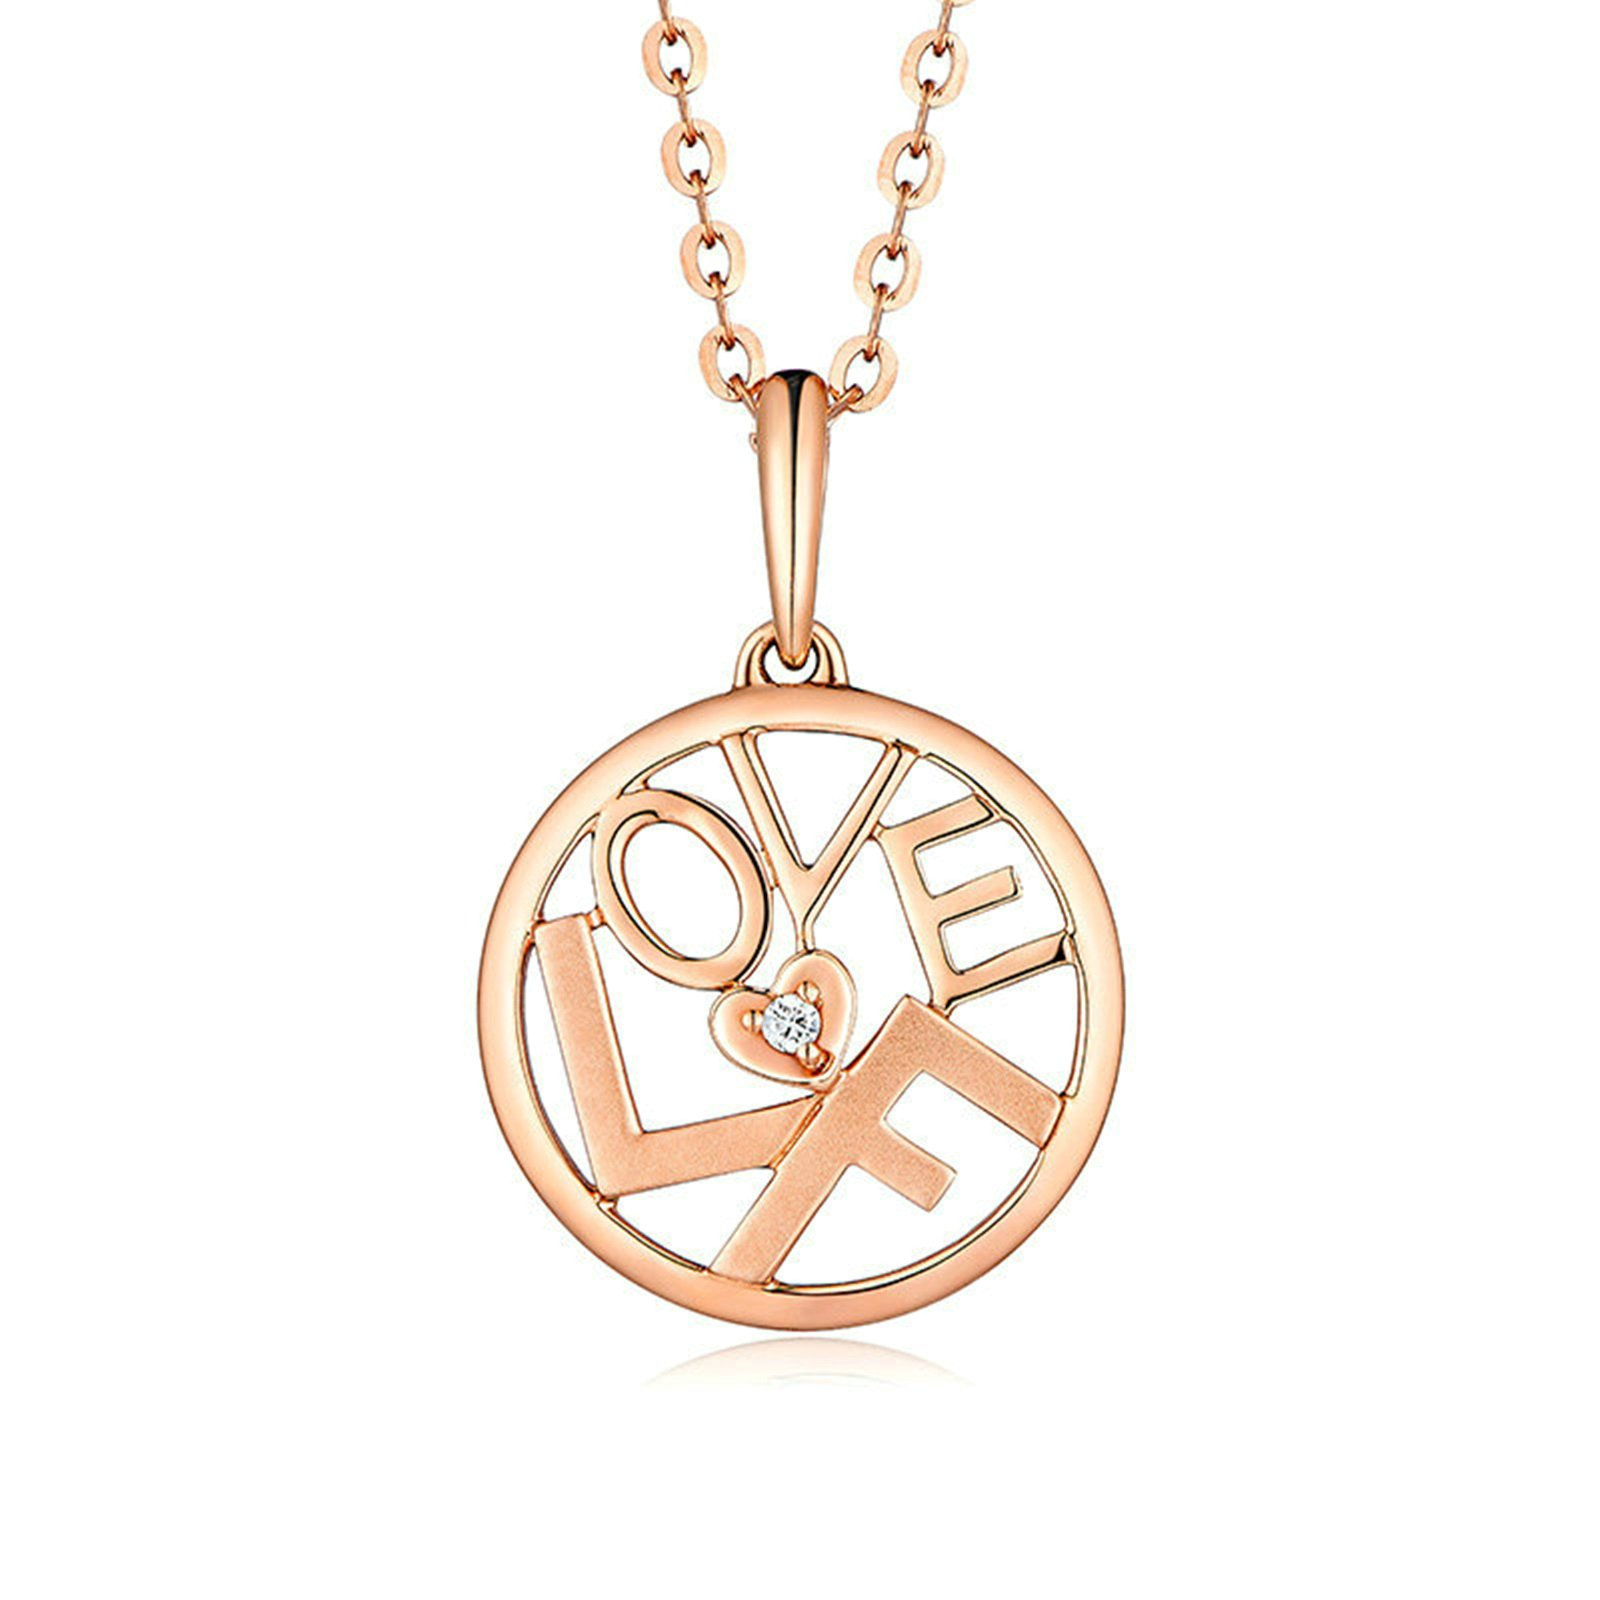 Daesar 18K Gold Womens Necklace Round LOVE Heart & Diamond Pendant Necklace Rose Gold Chain 45CM (2.6G) by Daesar (Image #1)